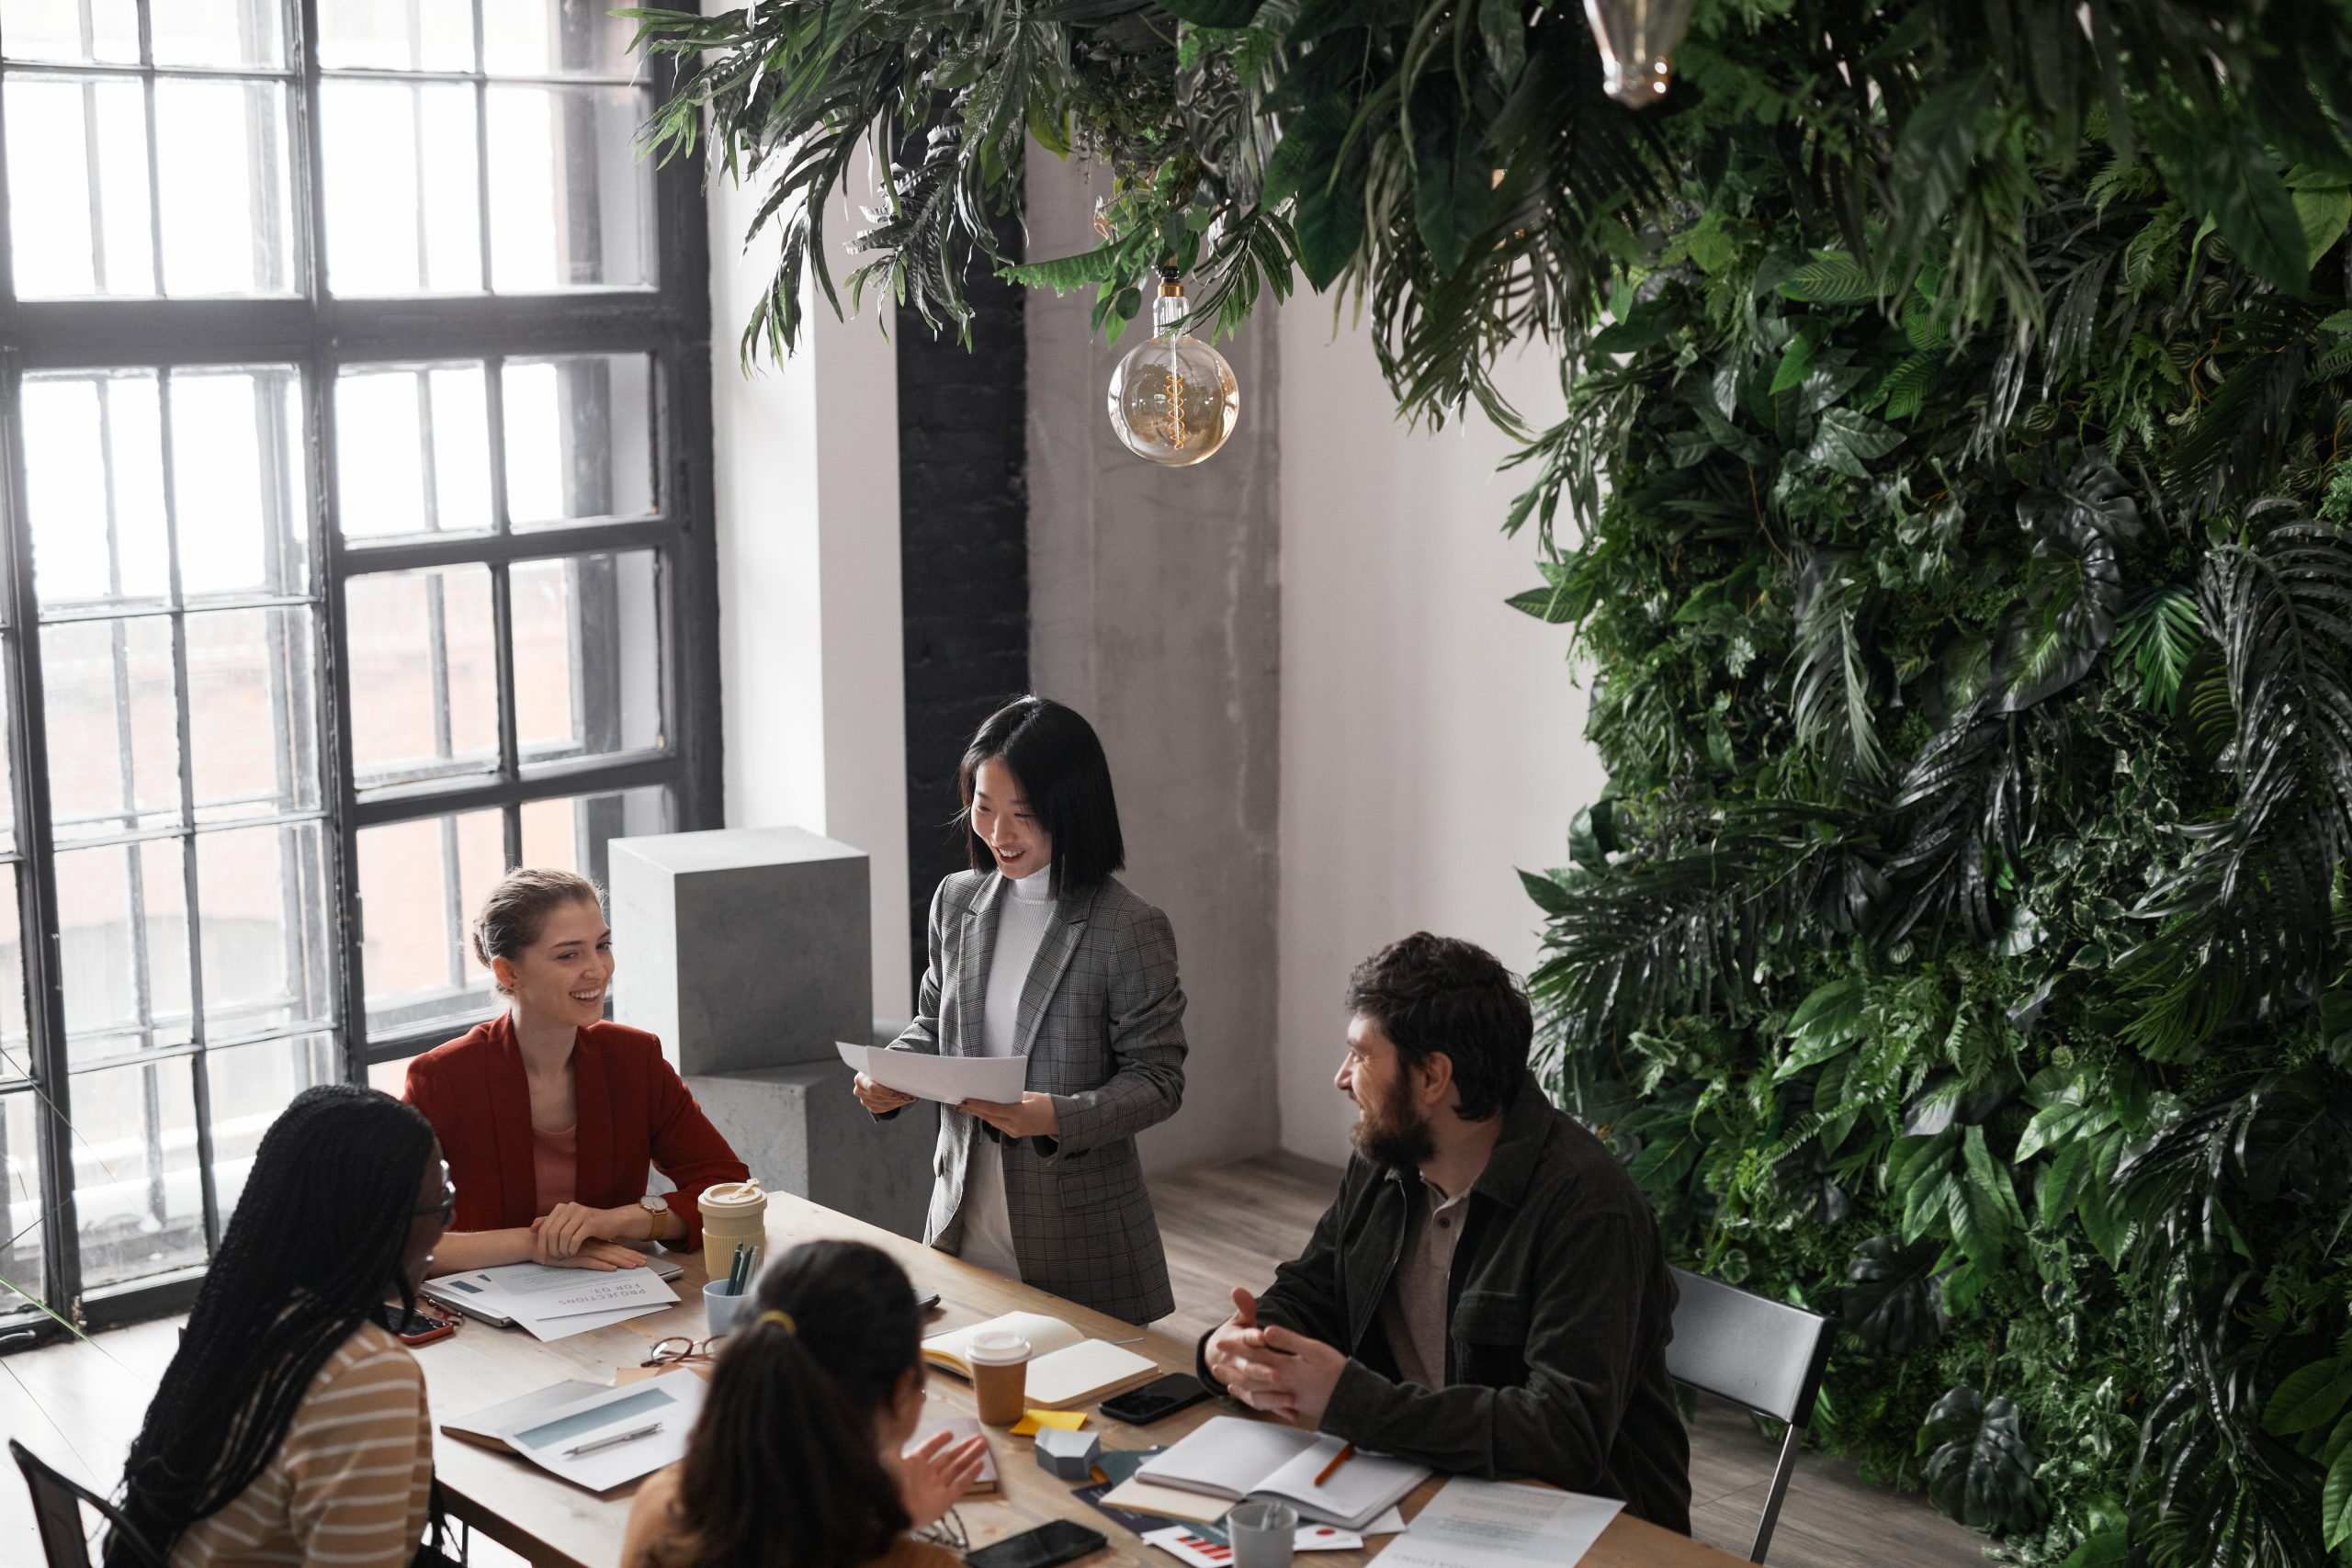 10 differences between working in a cafe compared to working in a coworking space 1 | Innovator Coworking Space